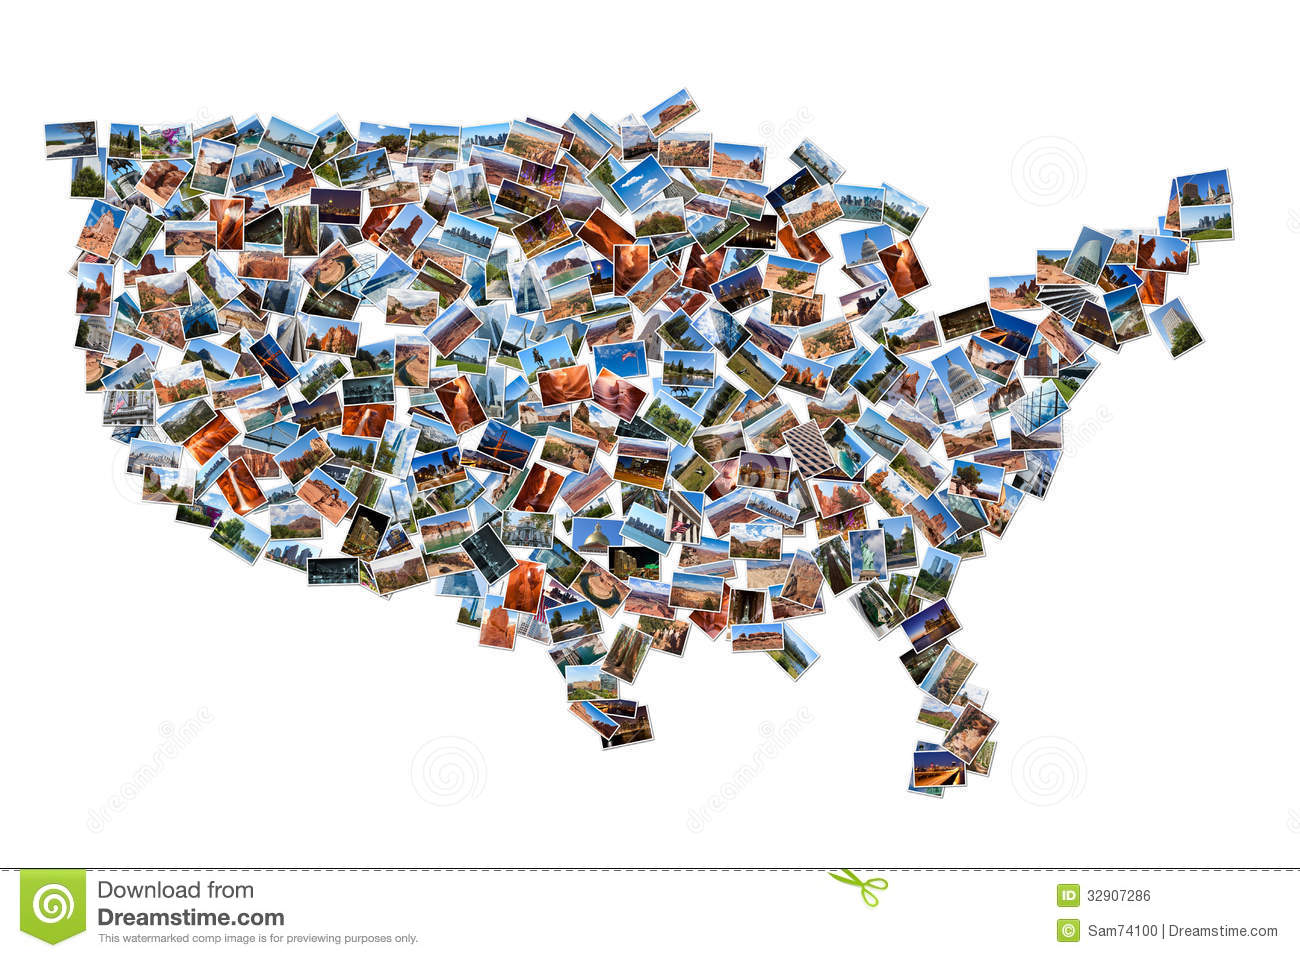 usa-map-shape-drawn-pictures-over-white-background-32907286 San Francisco On A Usa Map on orlando on a usa map, mojave desert on a usa map, hudson river on a usa map, chesapeake bay on a usa map, poconos on a usa map, anaheim on a usa map, appalachian mountains on a usa map, zion national park on a usa map, mount rushmore on a usa map, the great lakes on a usa map, cupertino on a usa map, santa fe on a usa map, phoenix on a usa map, missouri river on a usa map, wyoming on a usa map, florida on a usa map, kansas river on a usa map, black hills on a usa map, minneapolis on a usa map, stanford on a usa map,